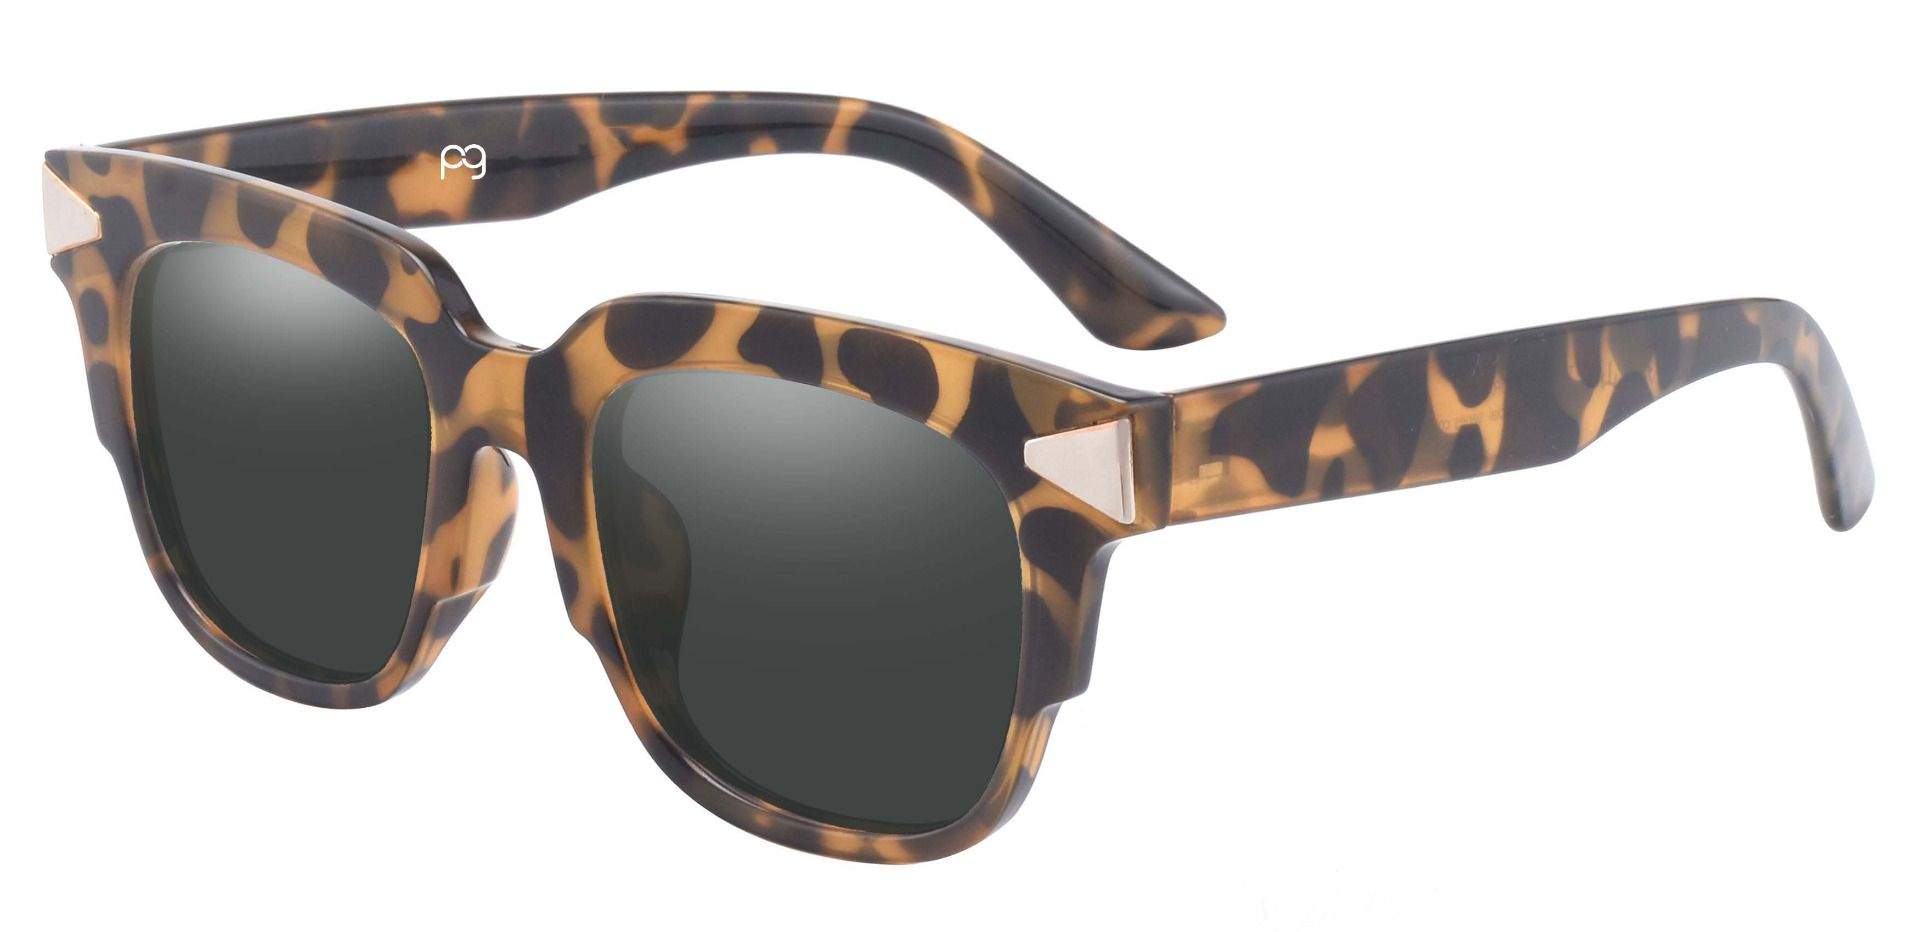 Ardent Square Non-Rx Sunglasses - Tortoise Frame With Gray Lenses